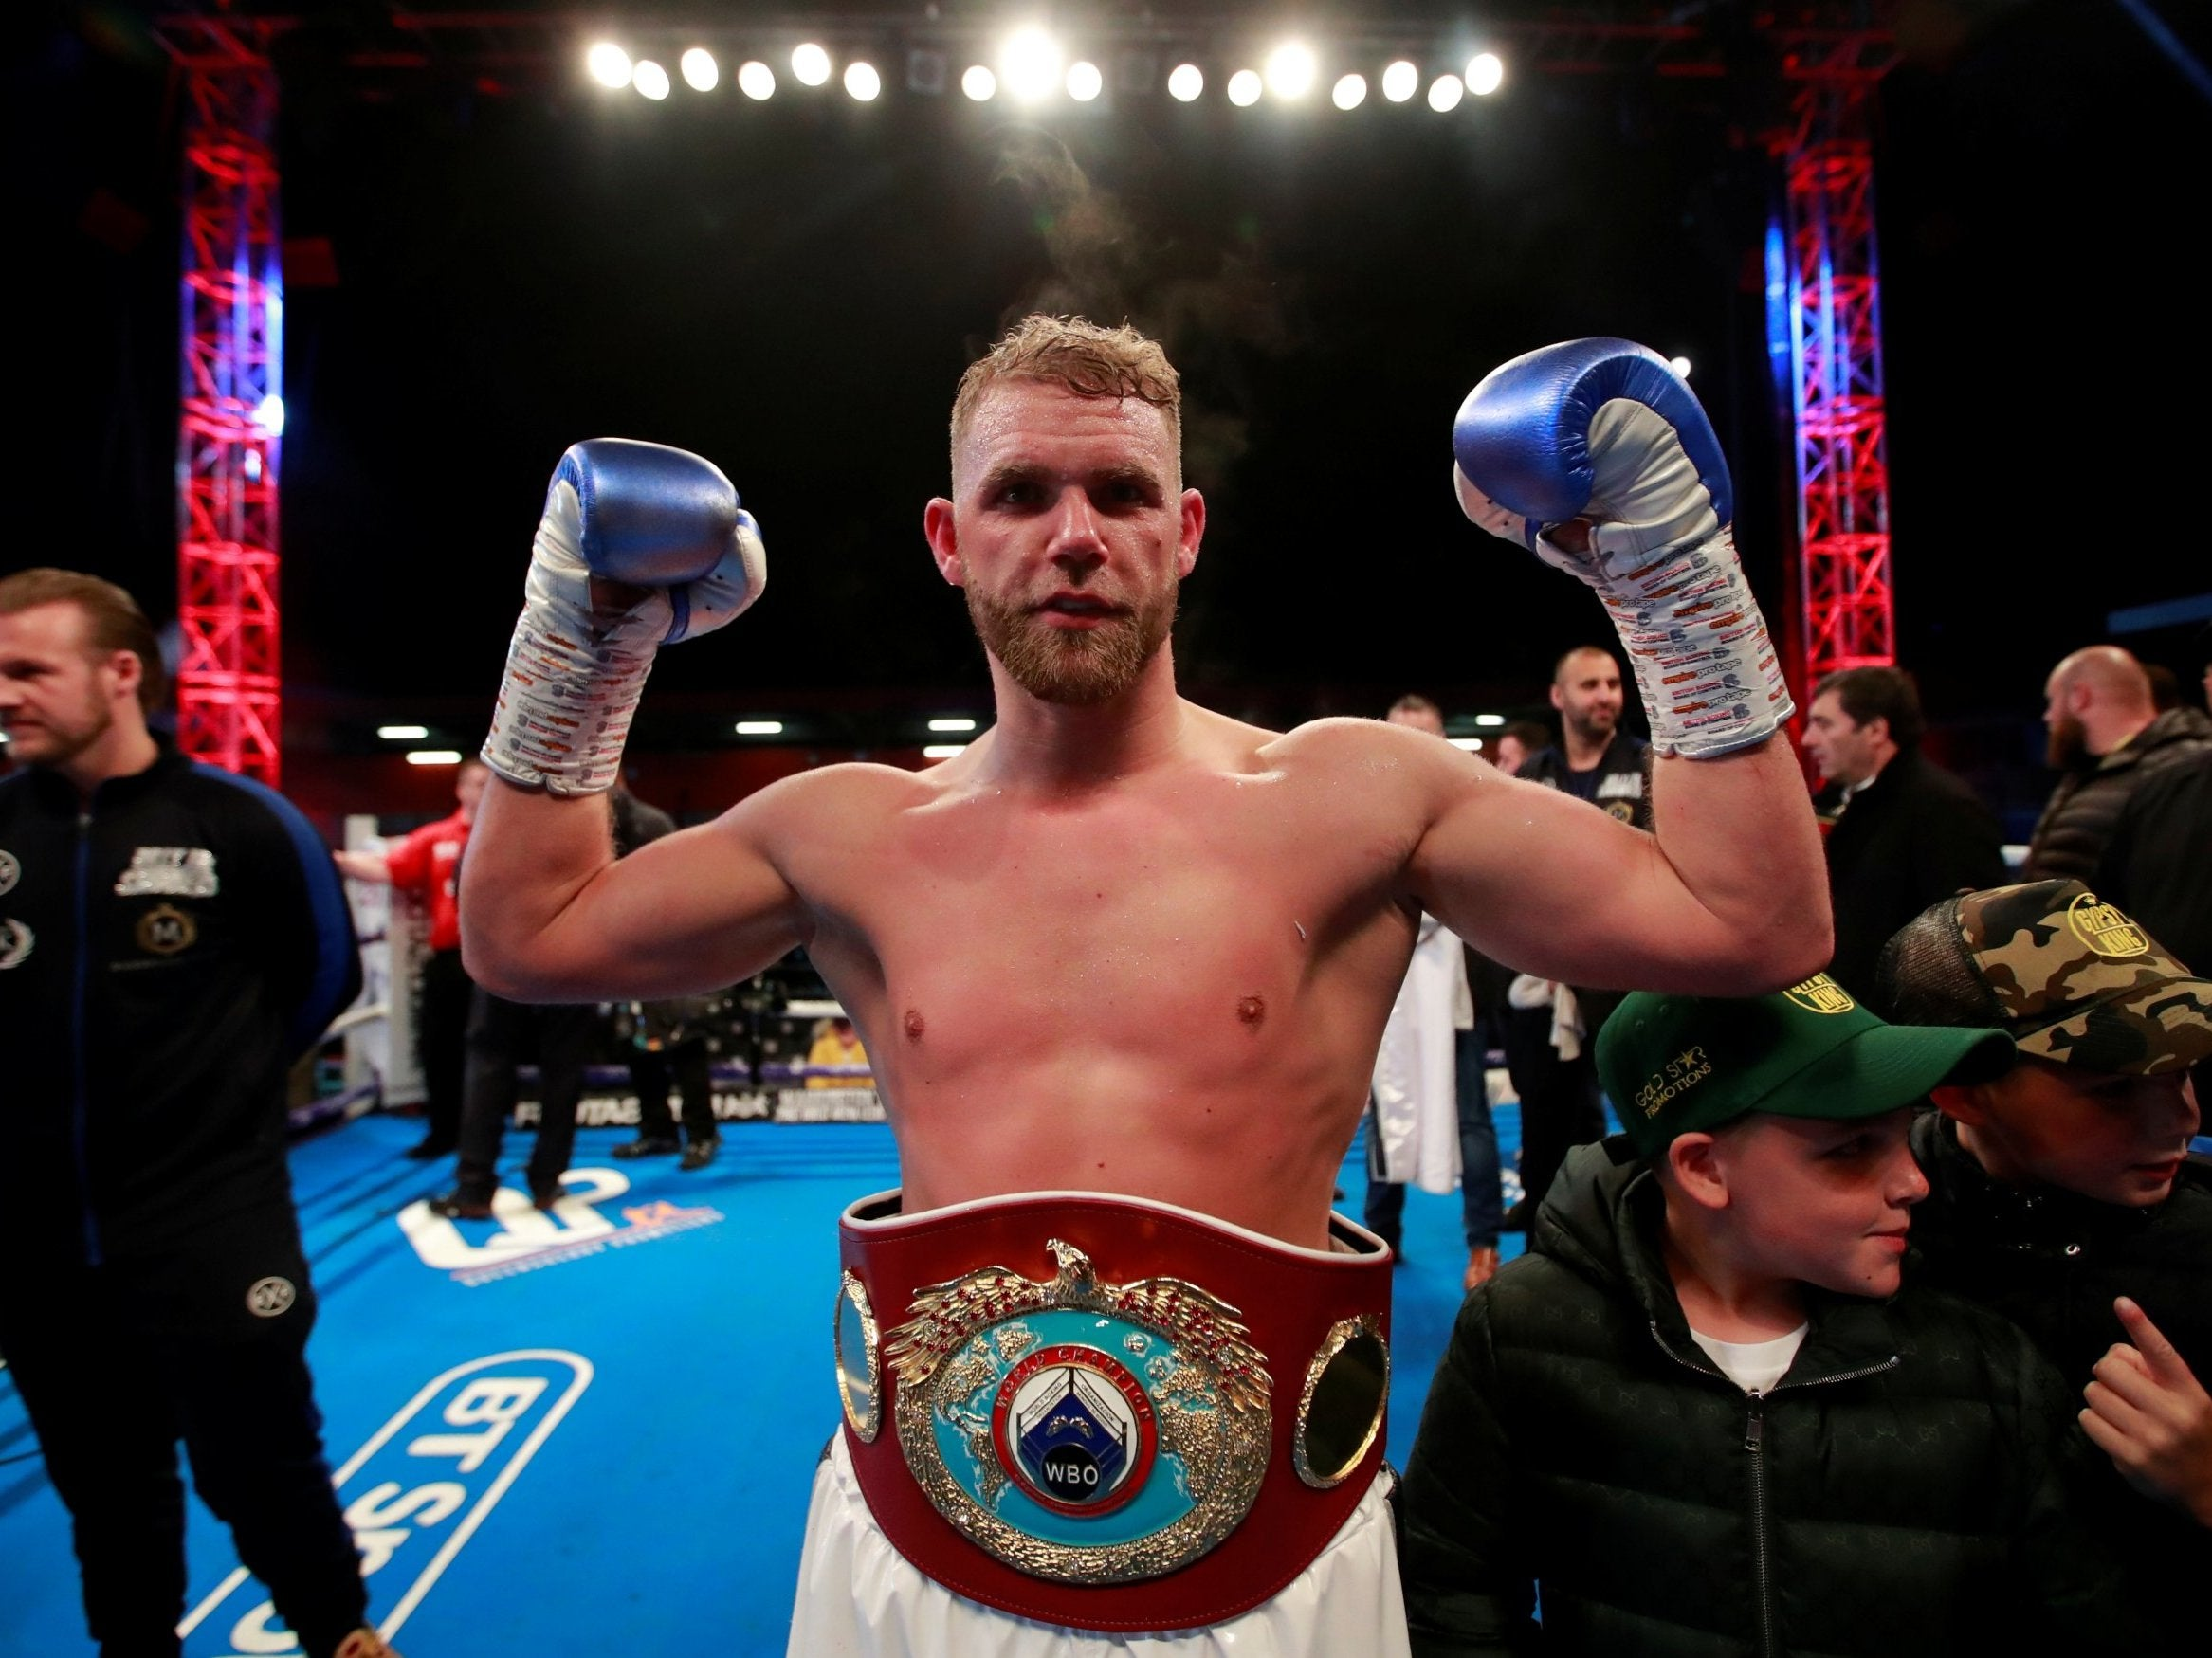 Saturday night's boxing bonanza brought out the best in Billy Joe Saunders and Josh Taylor but Naoya Inoue stole the show